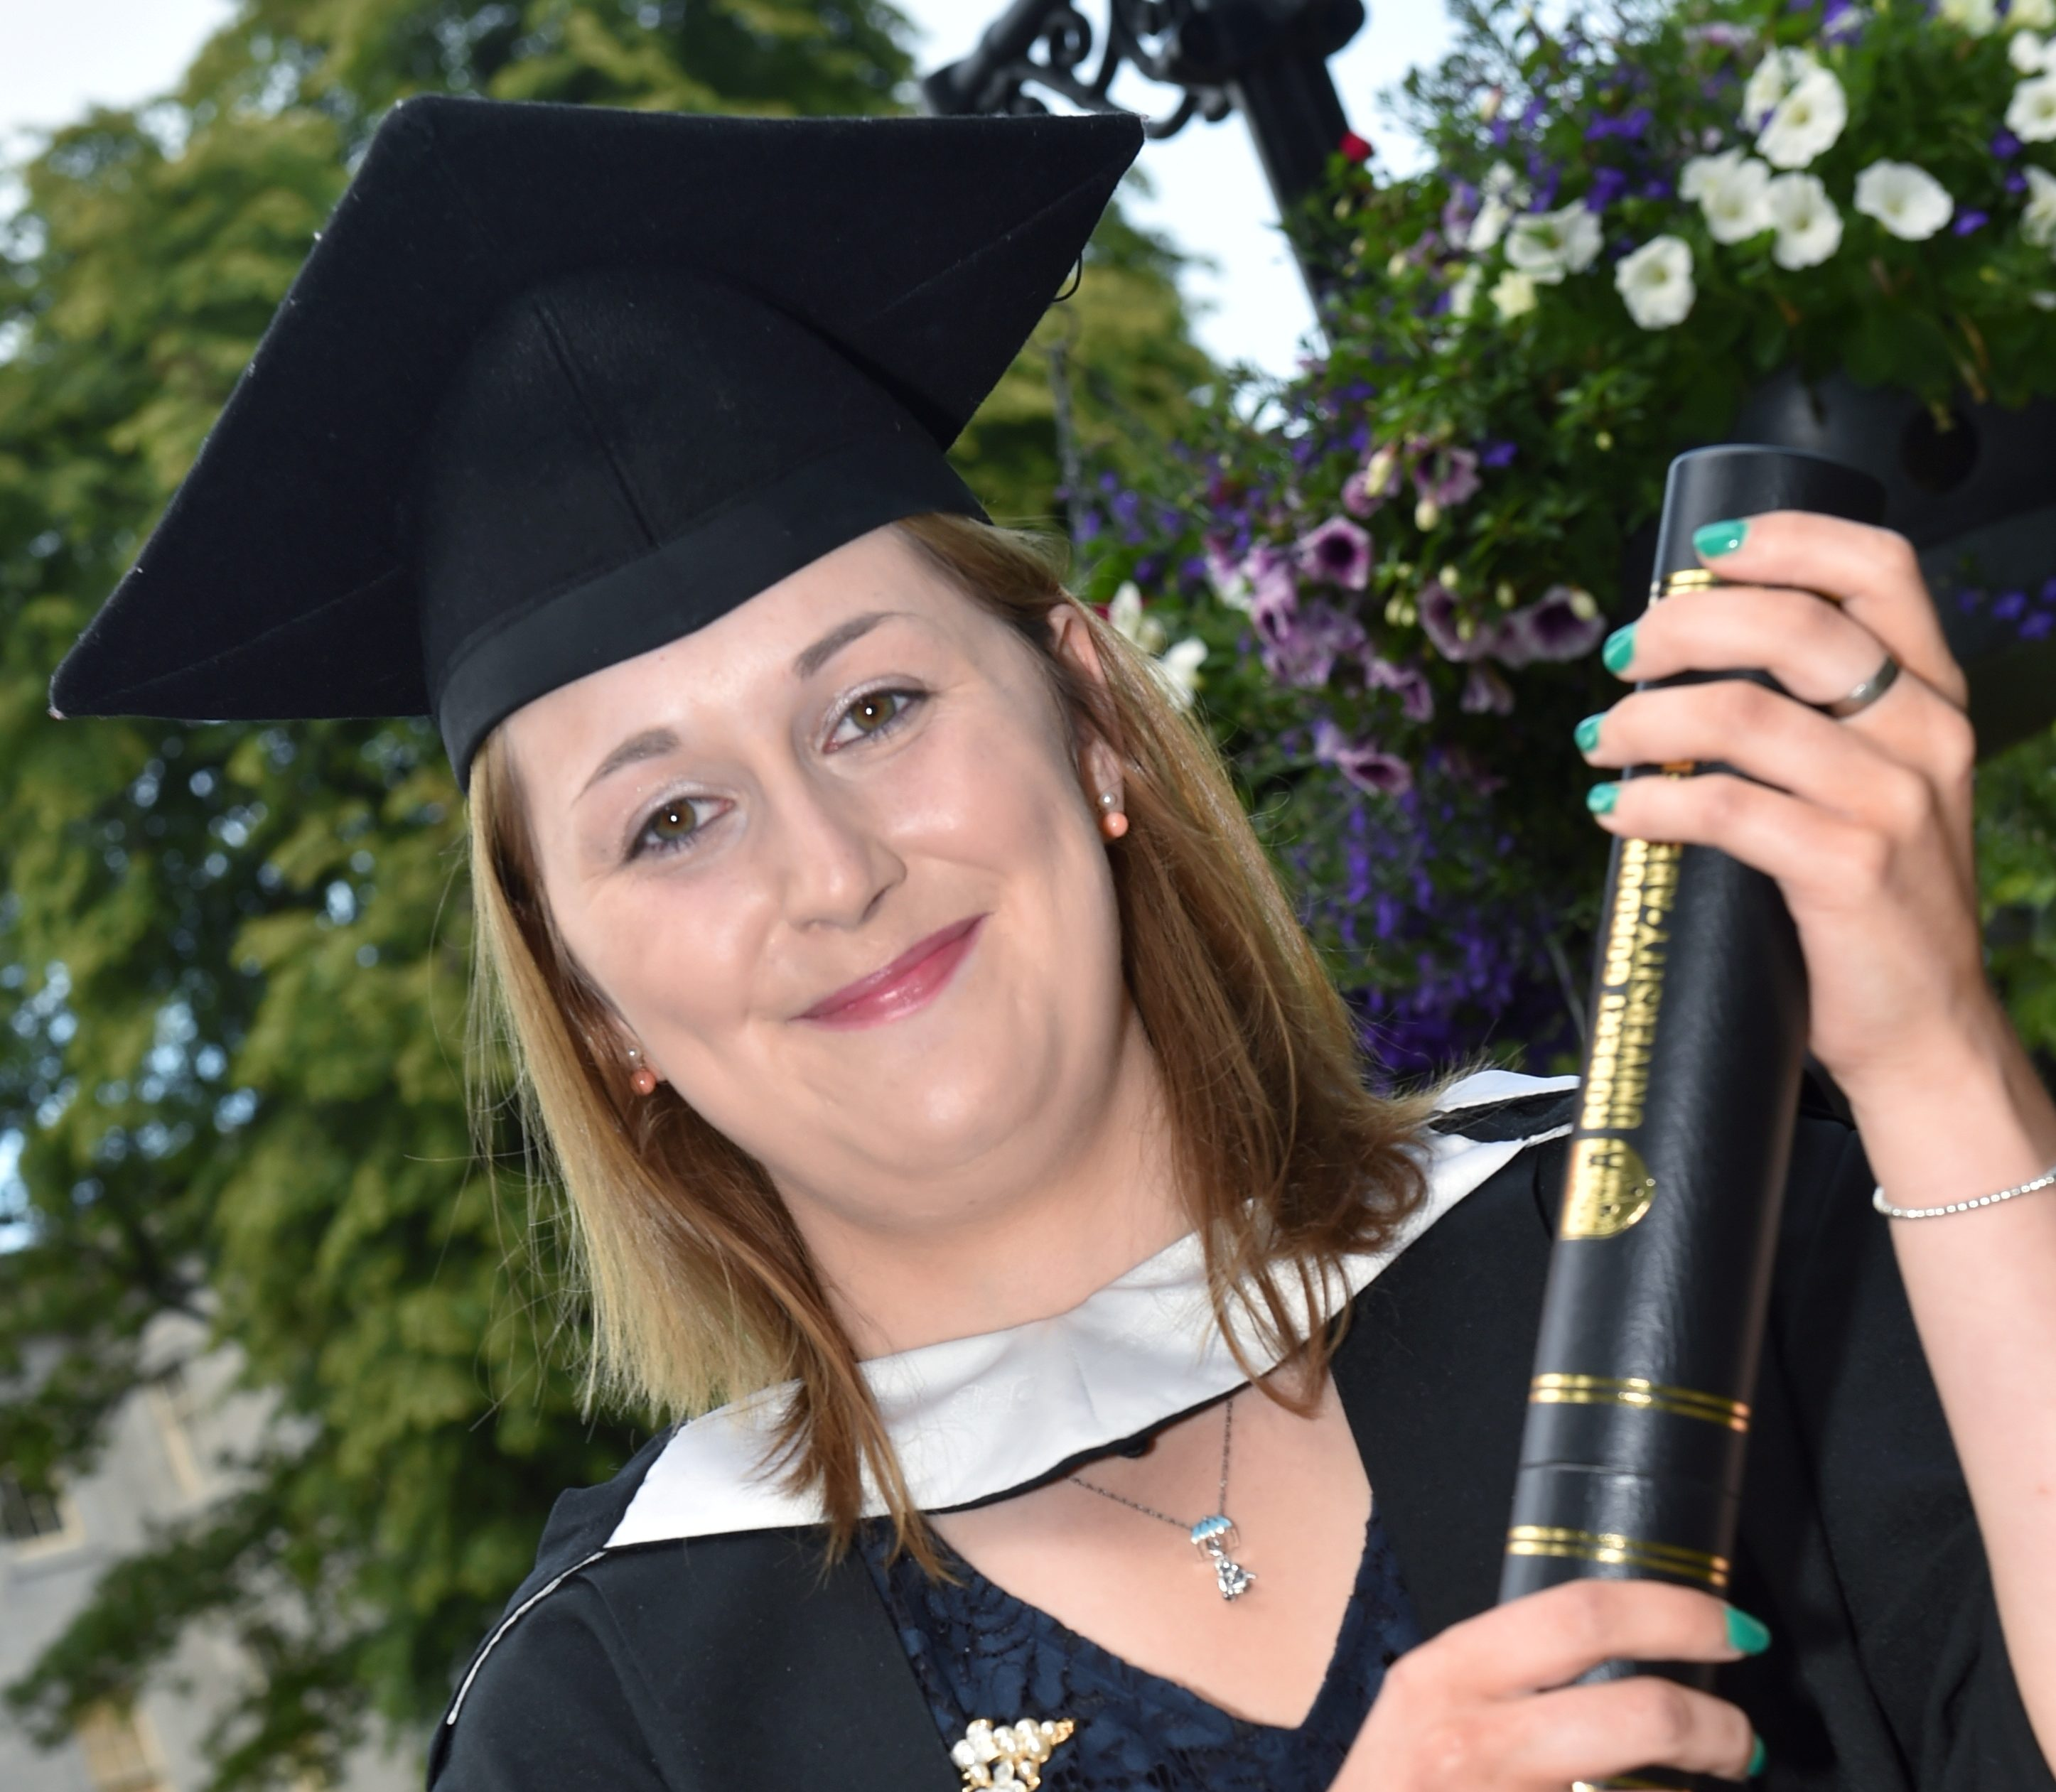 Sophie Allardes completed her media degree at RGU.